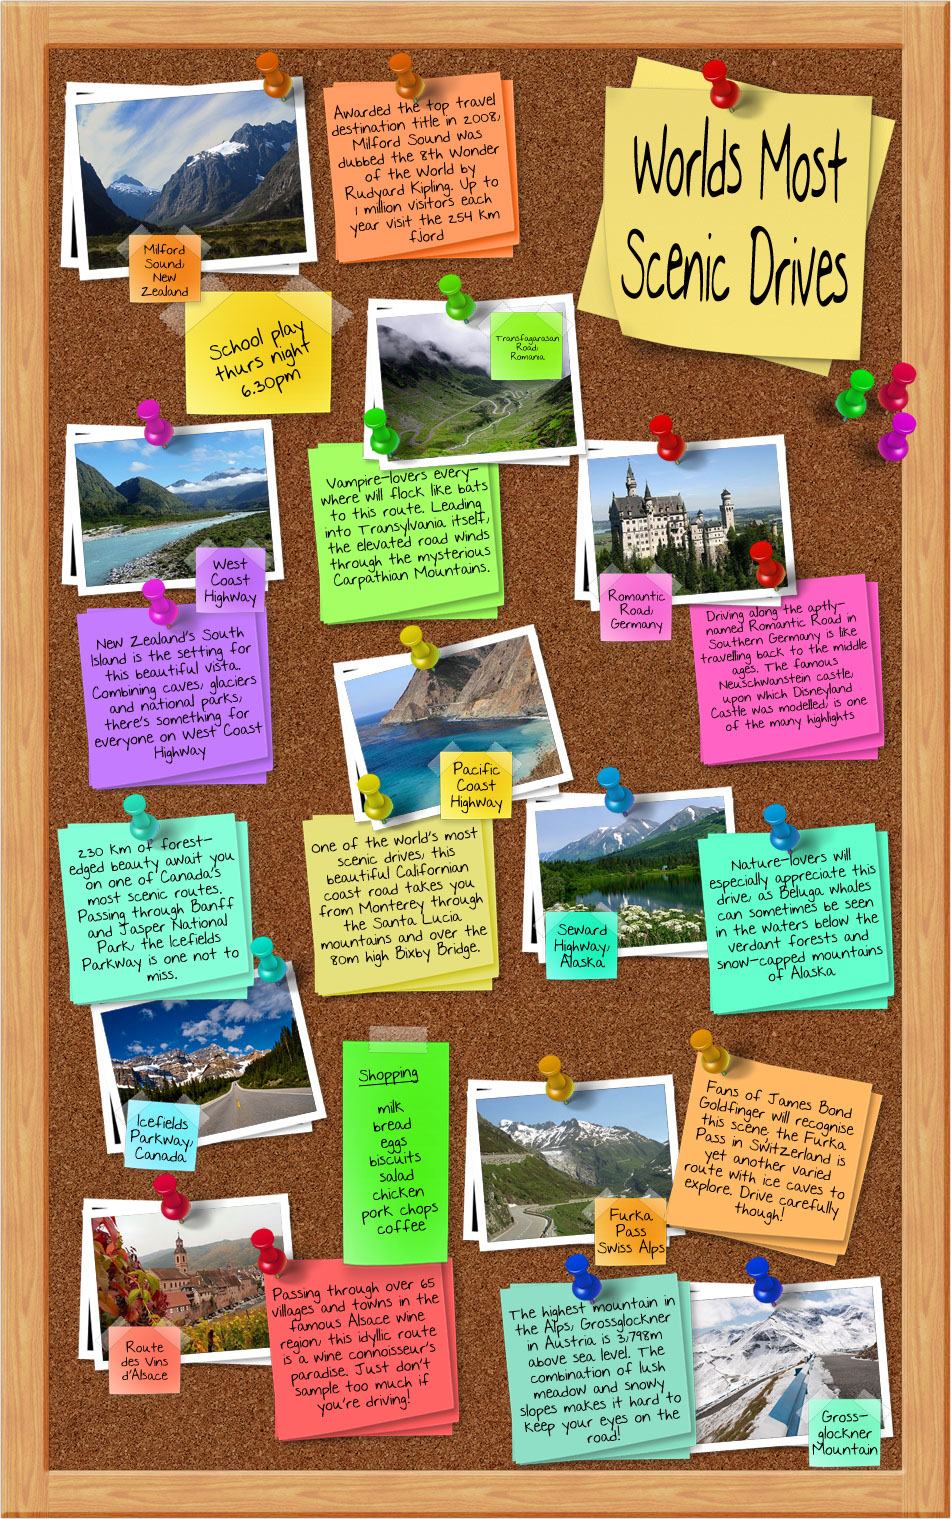 Worlds Most Scenic Placesinfographic